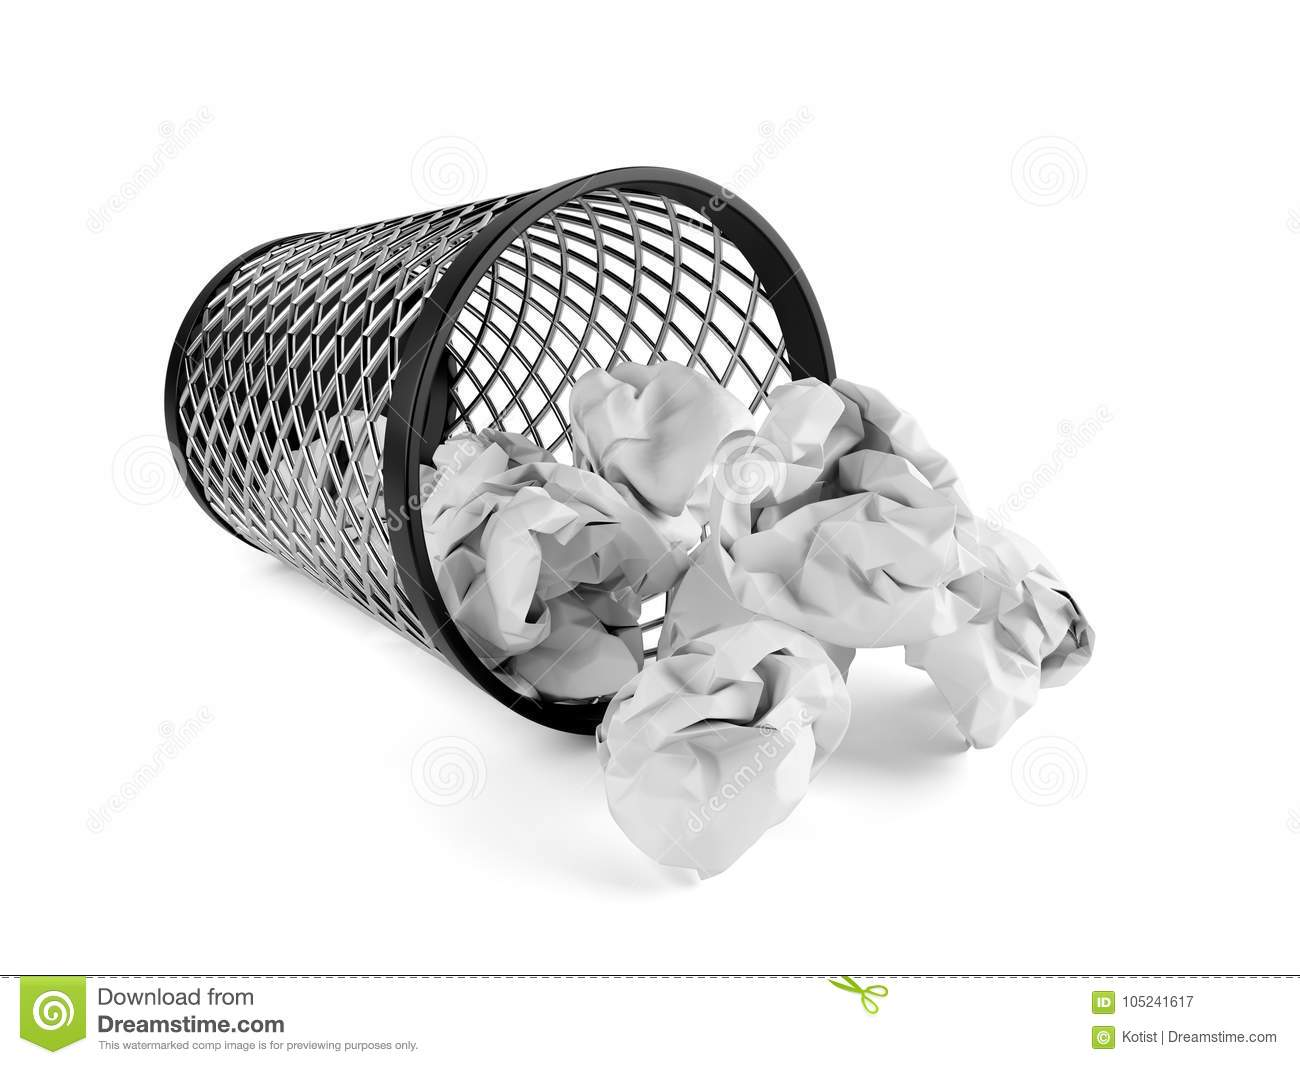 Trash bin dropped with crumpled paper